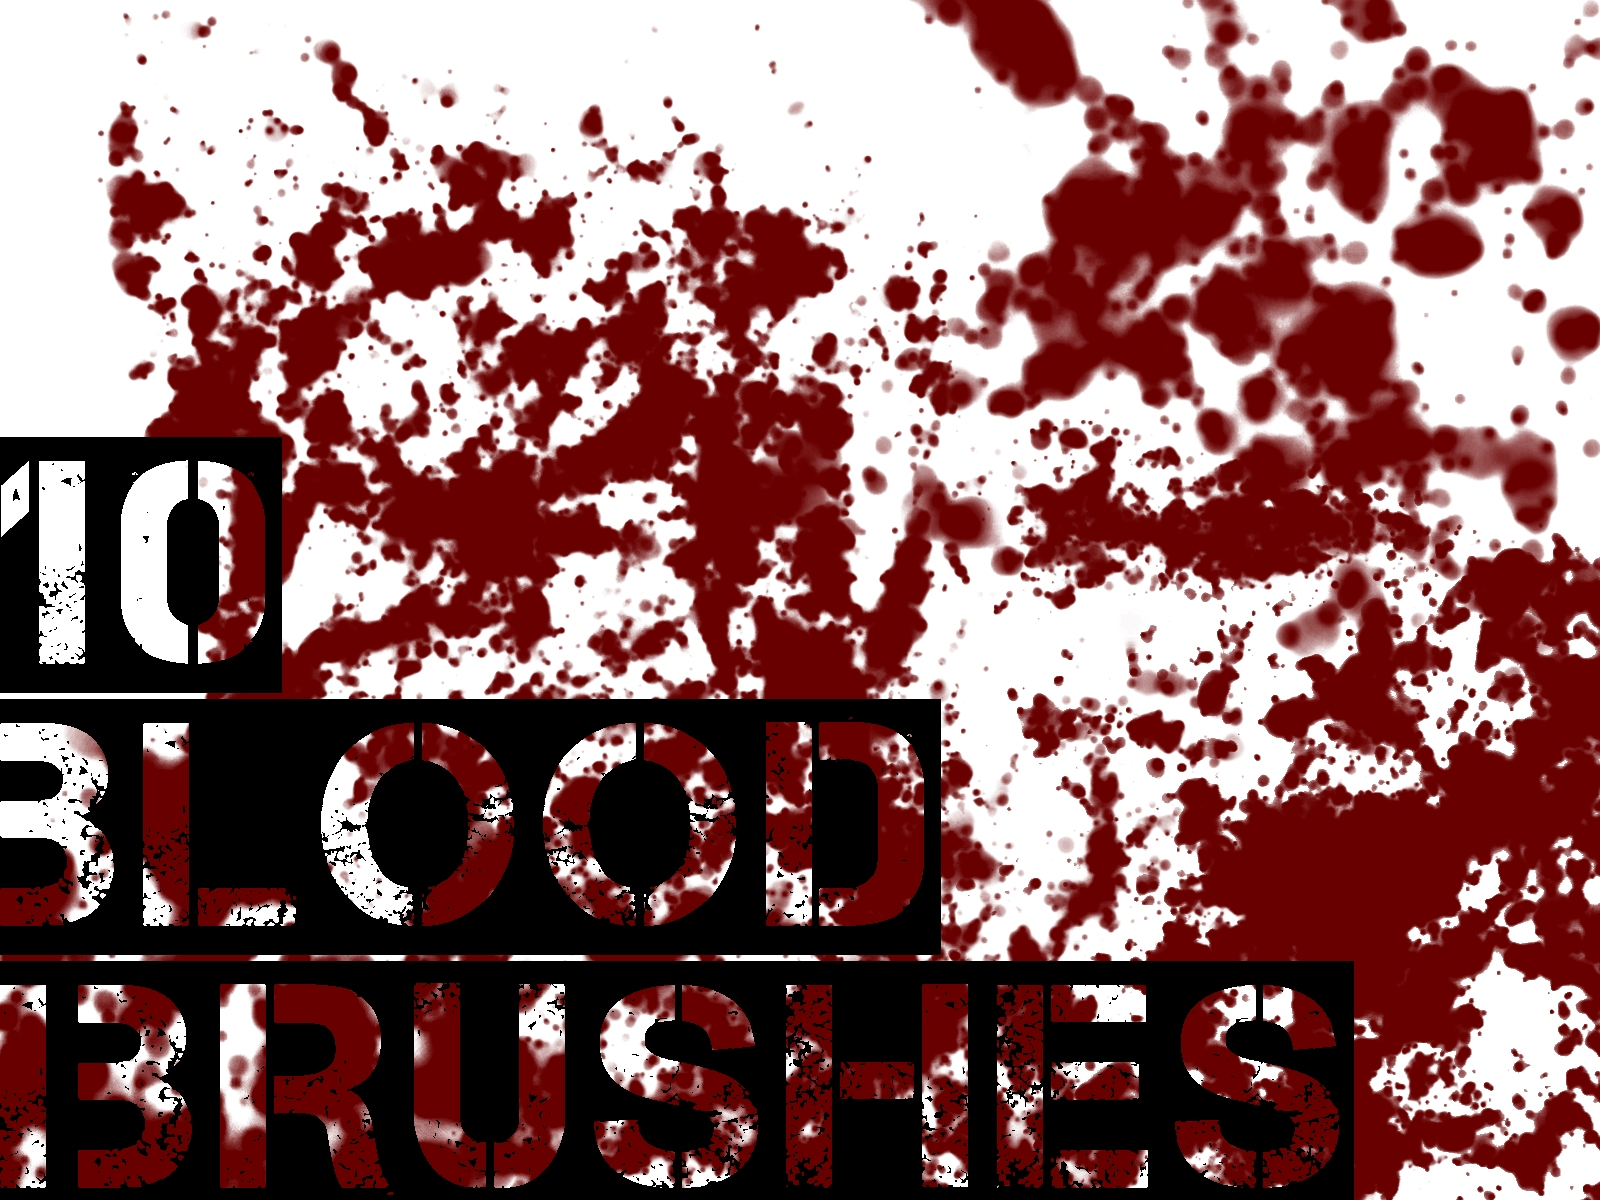 10 Blood Brushes - GIMP by danieeel31